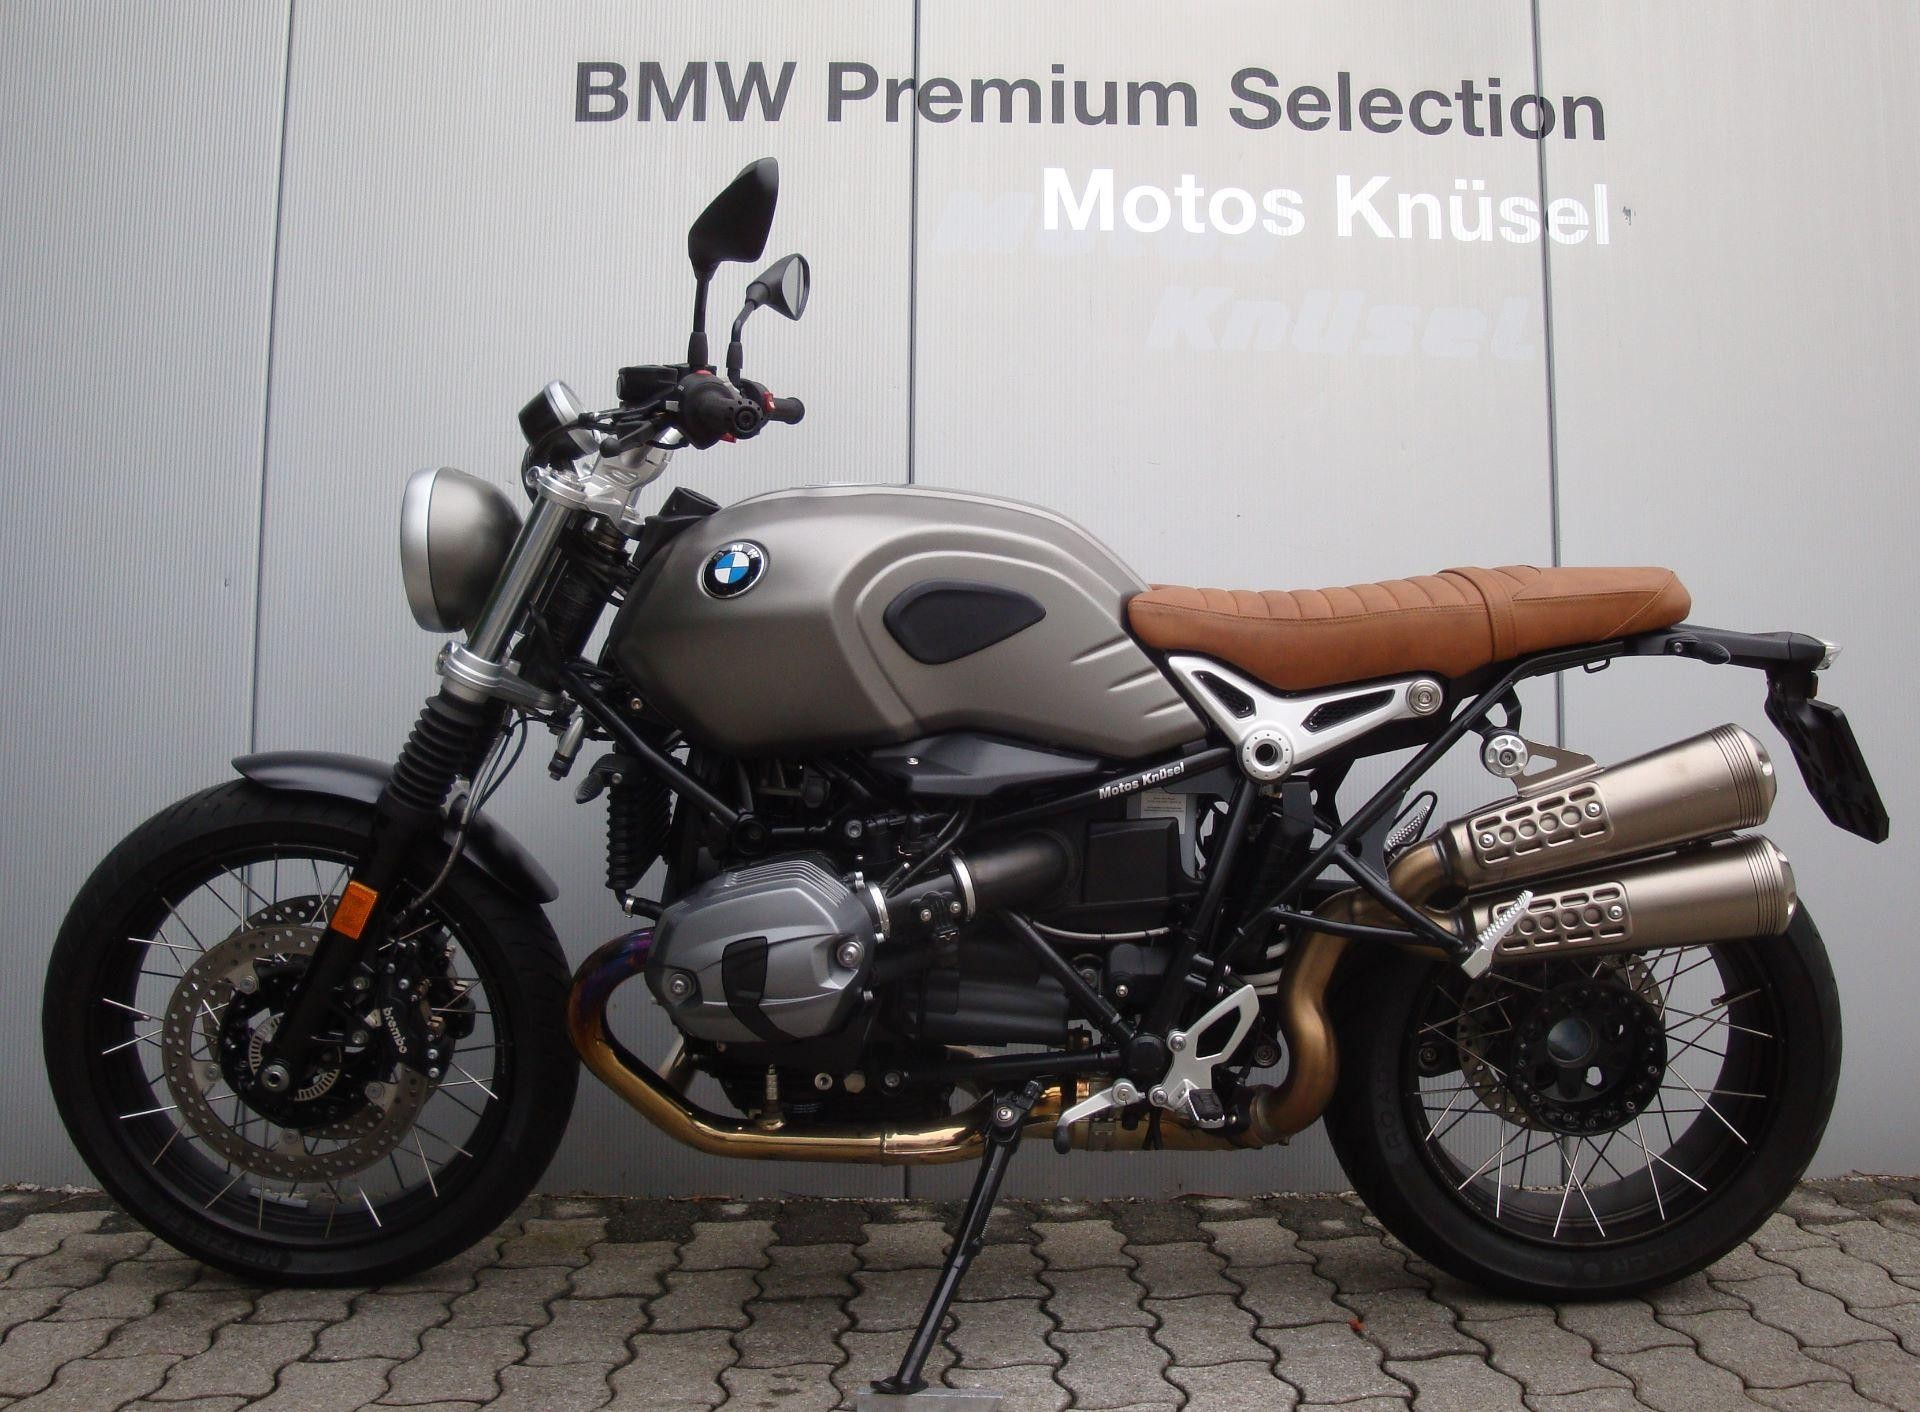 motorrad occasion kaufen bmw r nine t scrambler abs motos. Black Bedroom Furniture Sets. Home Design Ideas